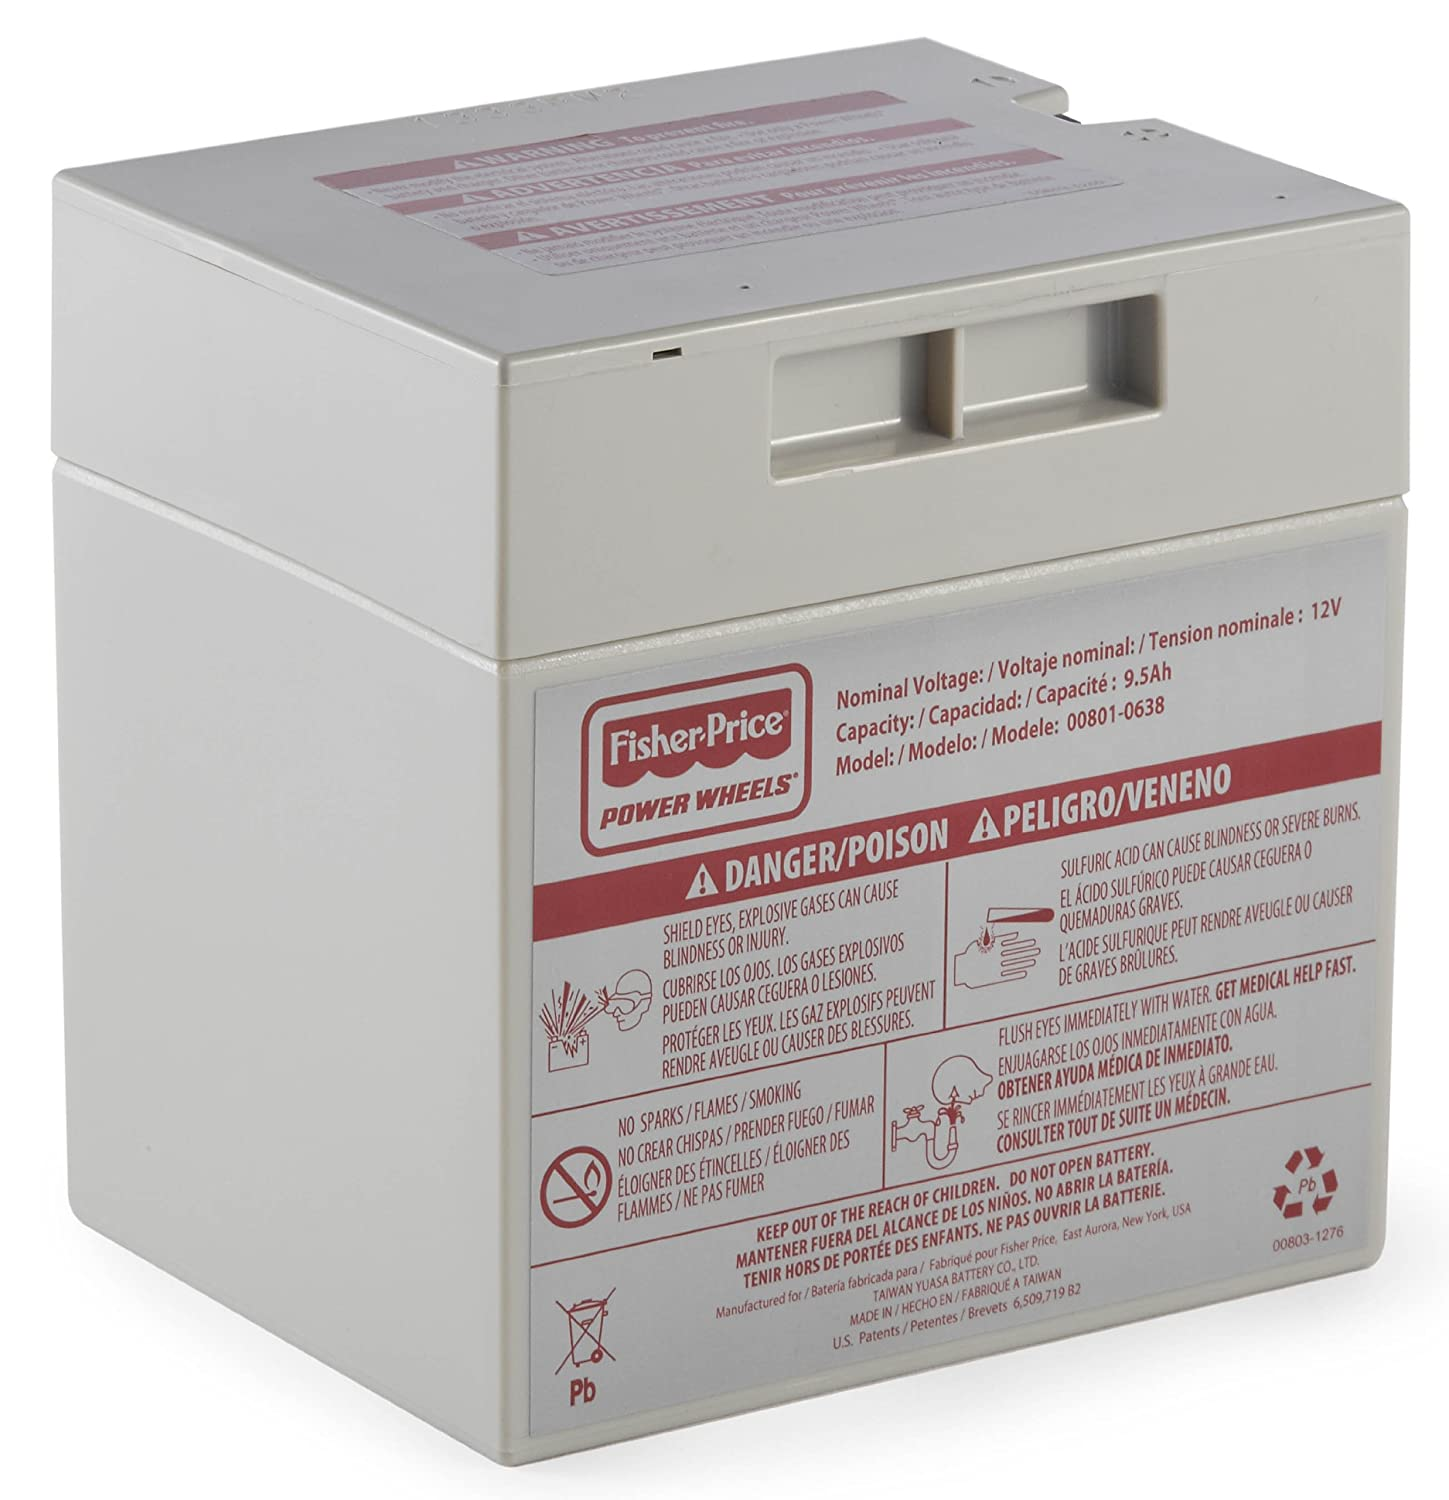 Power Wheels 12-Volt Rechargeable Battery